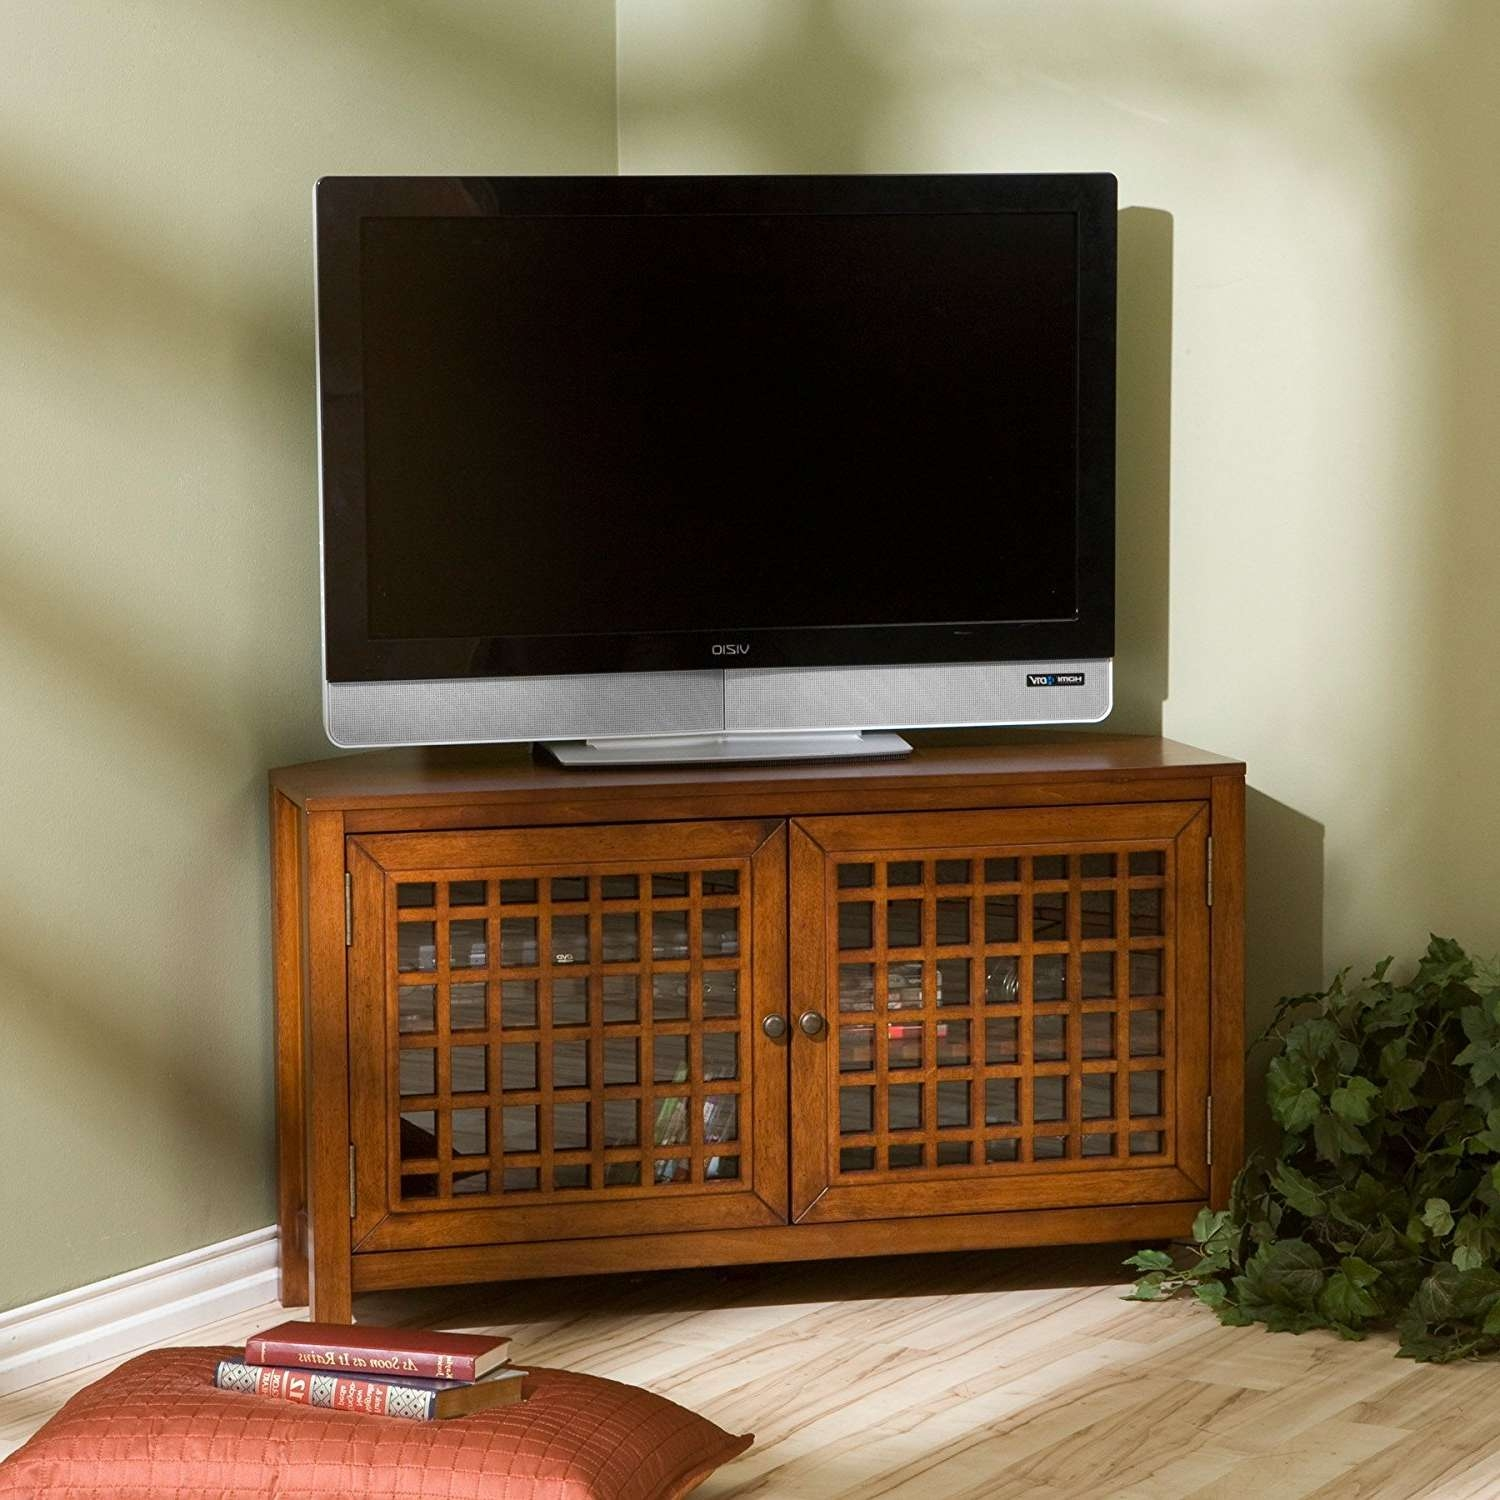 Tv : White Tv Stands Wonderful Maple Tv Stands For Flat Screens Pertaining To Maple Tv Stands For Flat Screens (View 10 of 15)